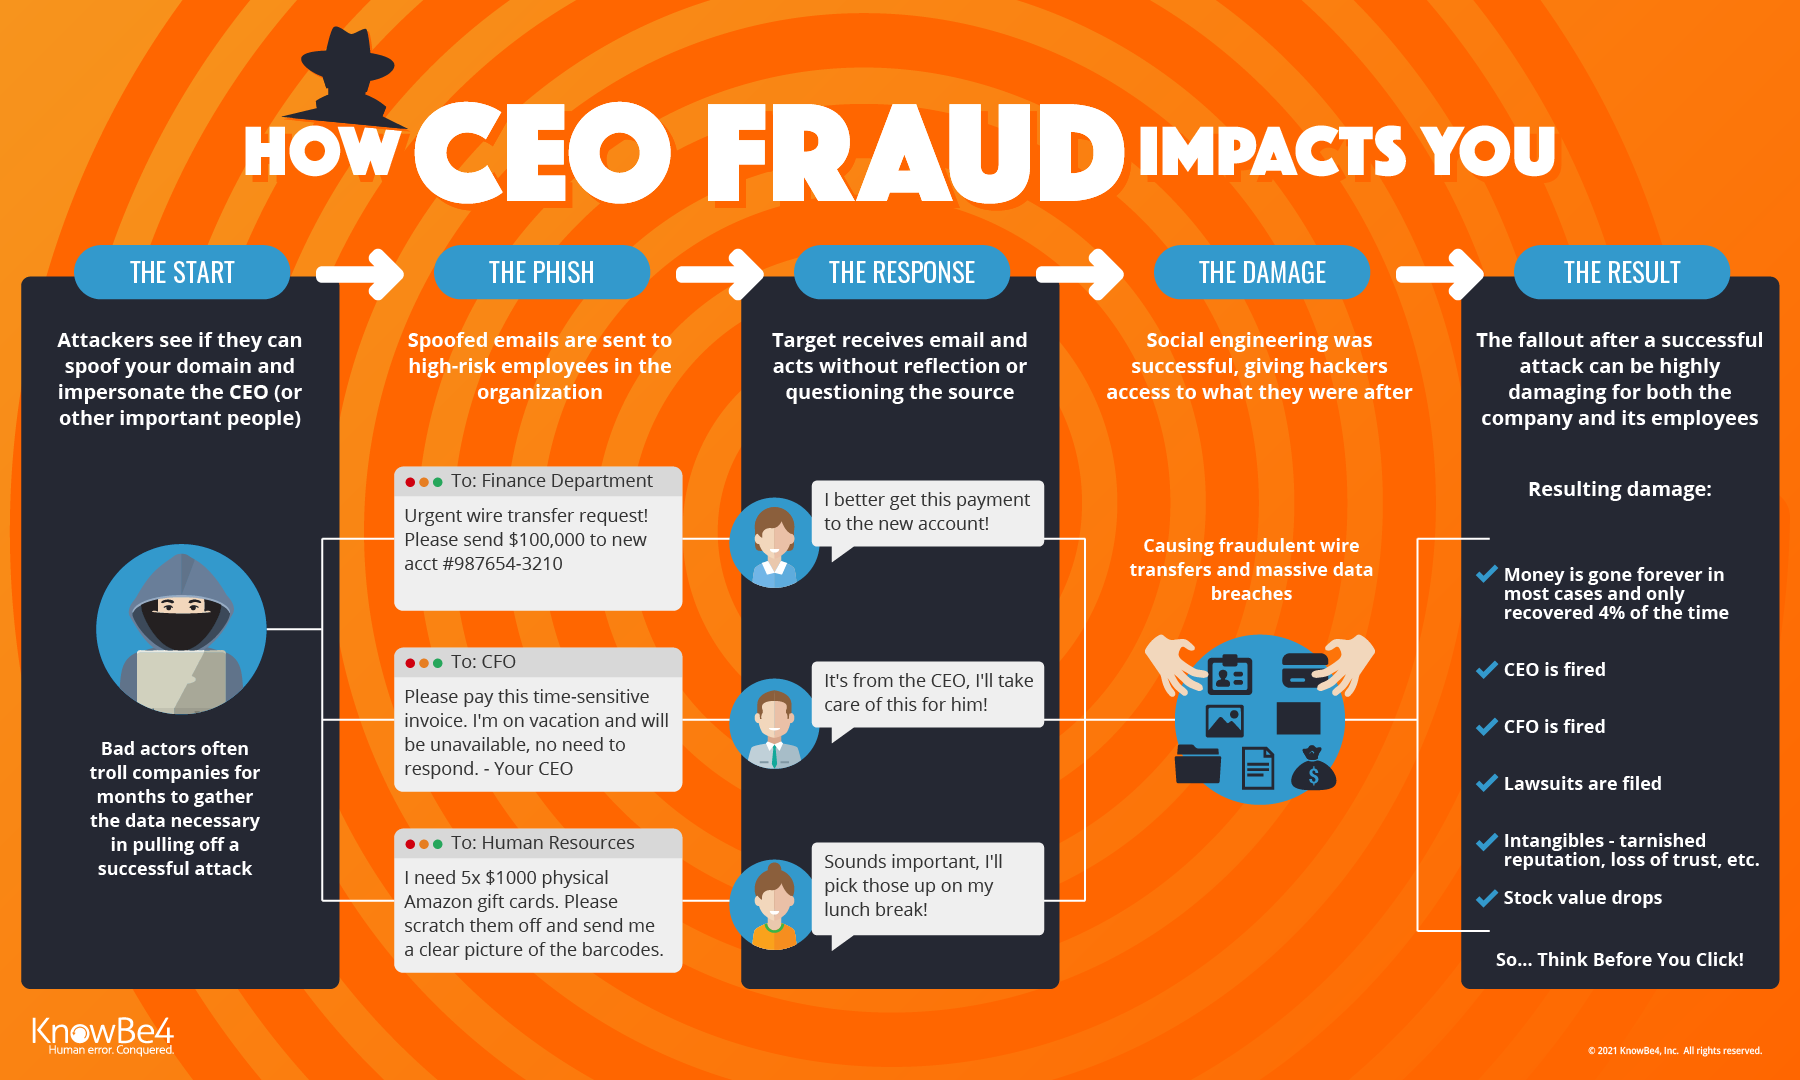 CEO Fraud | KnowBe4